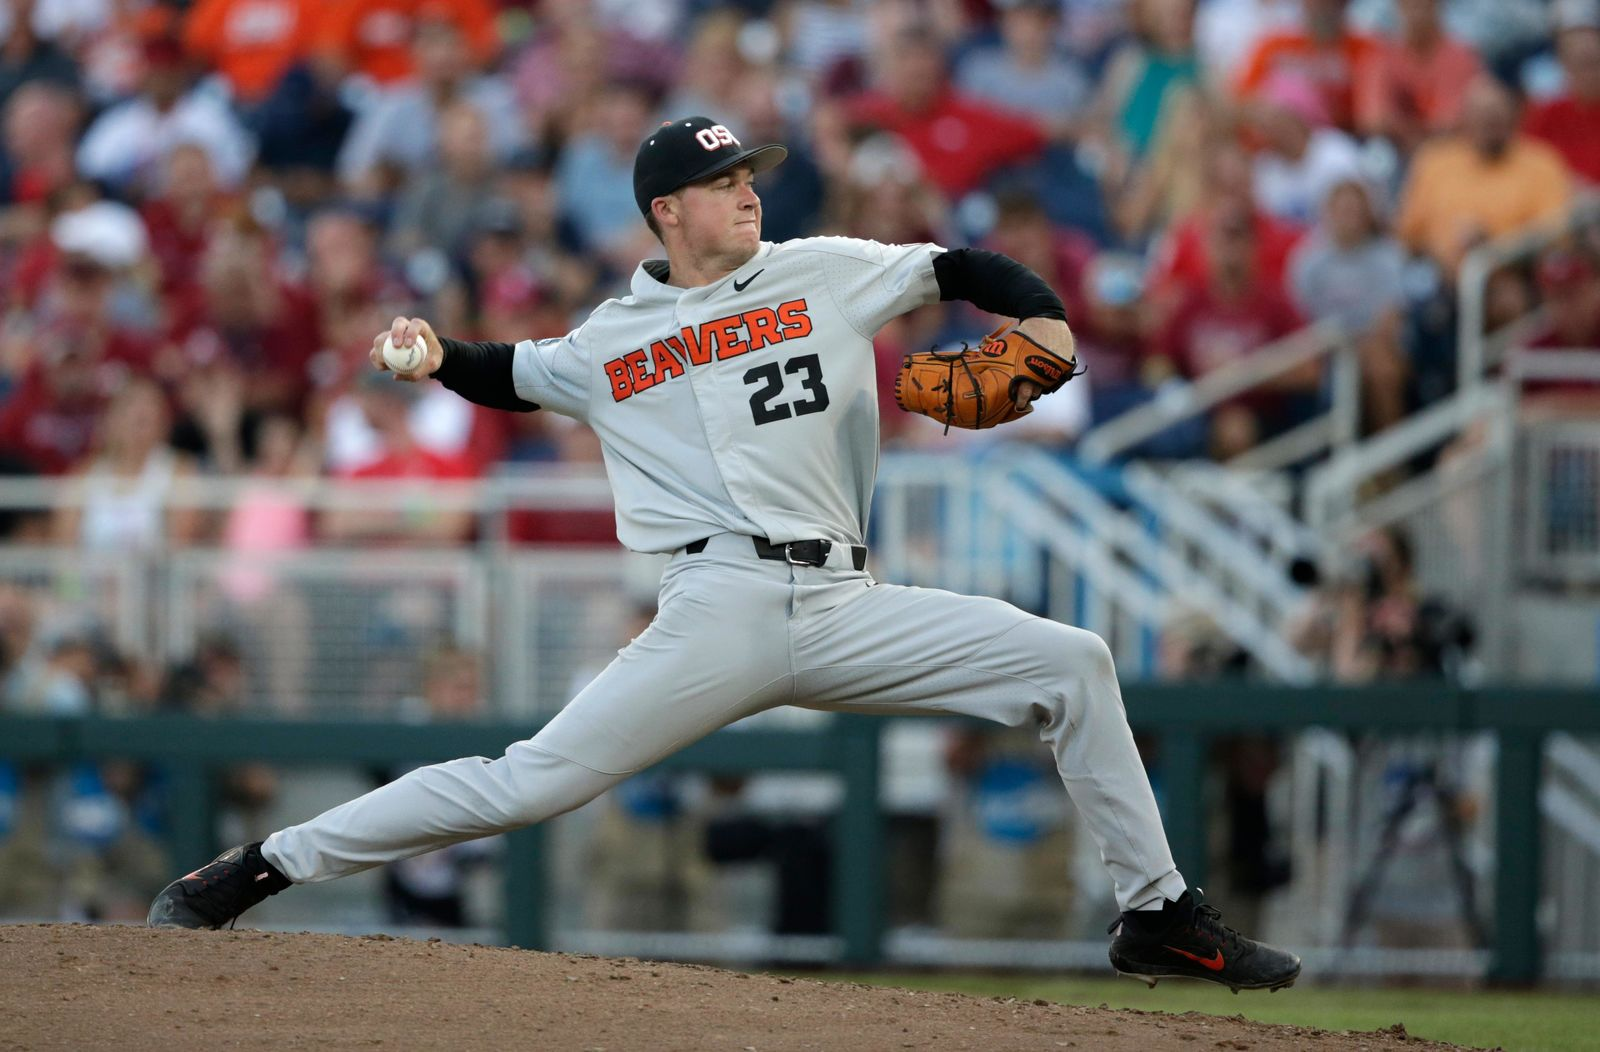 Oregon State pitcher Kevin Abel (23) throws against Arkansas during the eighth inning of Game 3 in the NCAA College World Series baseball finals, Thursday, June 28, 2018, in Omaha, Neb. (AP Photo/Nati Harnik)